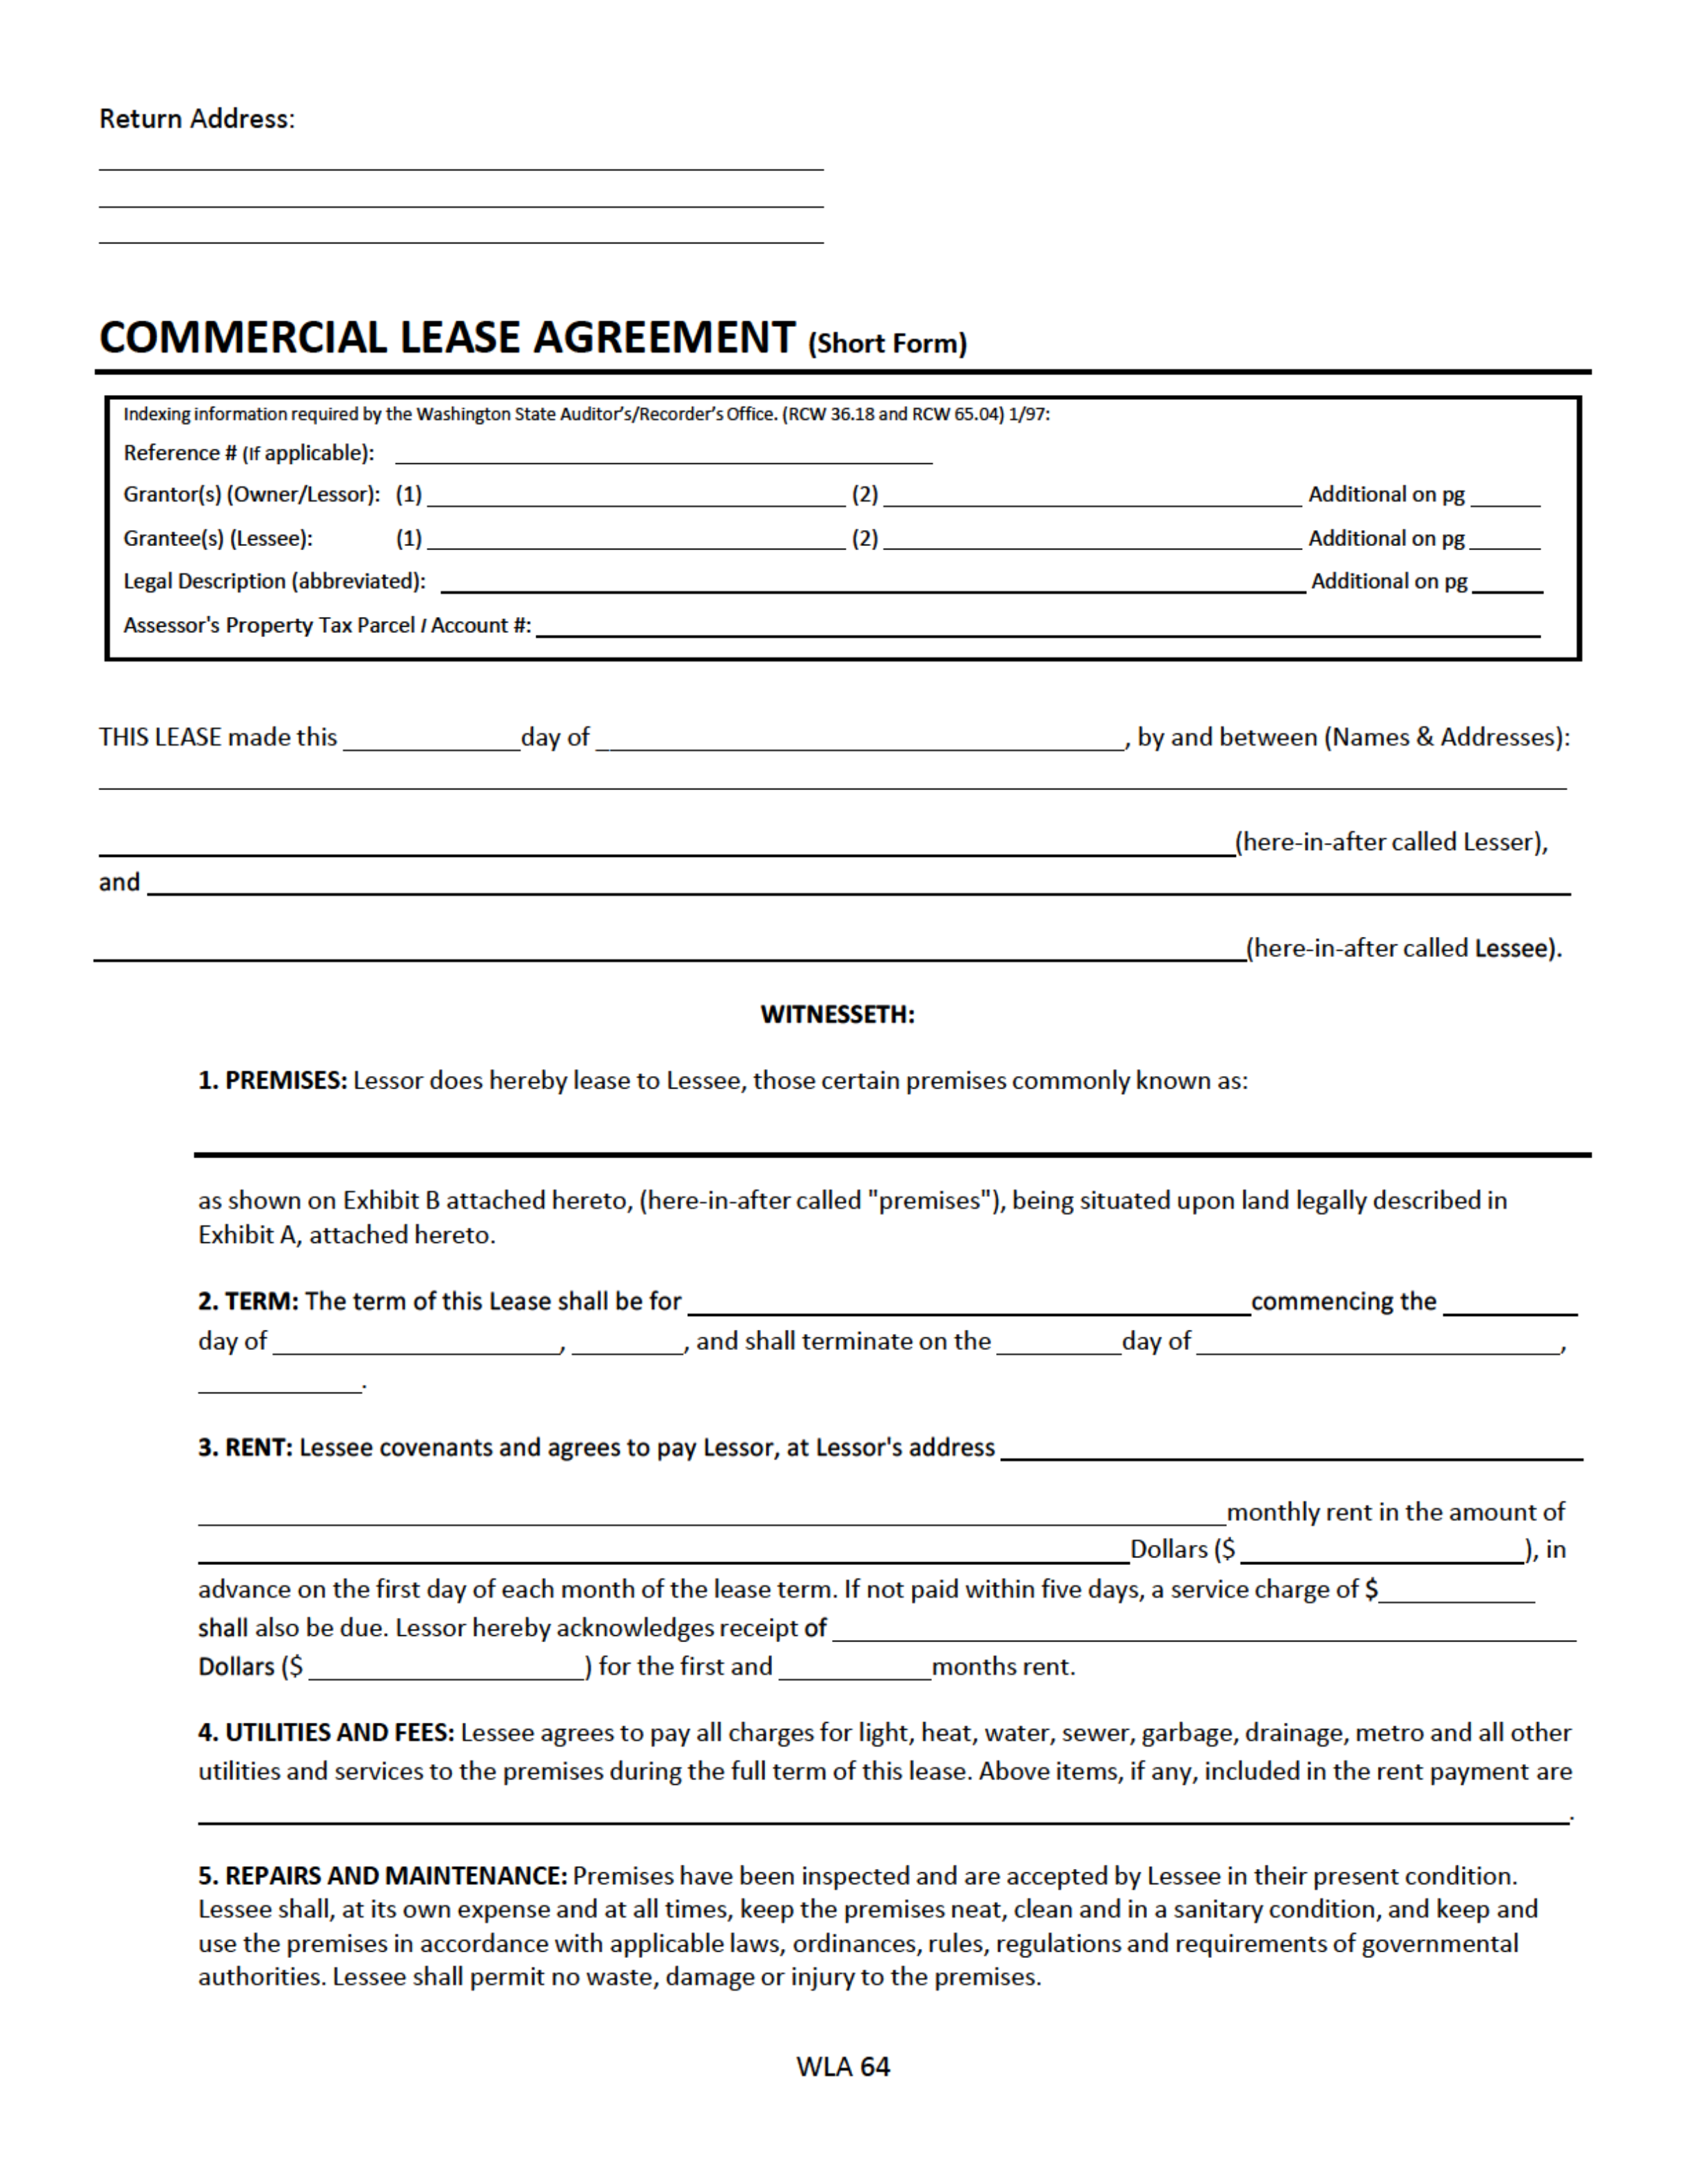 Washington Commercial Lease Agreement Free Download